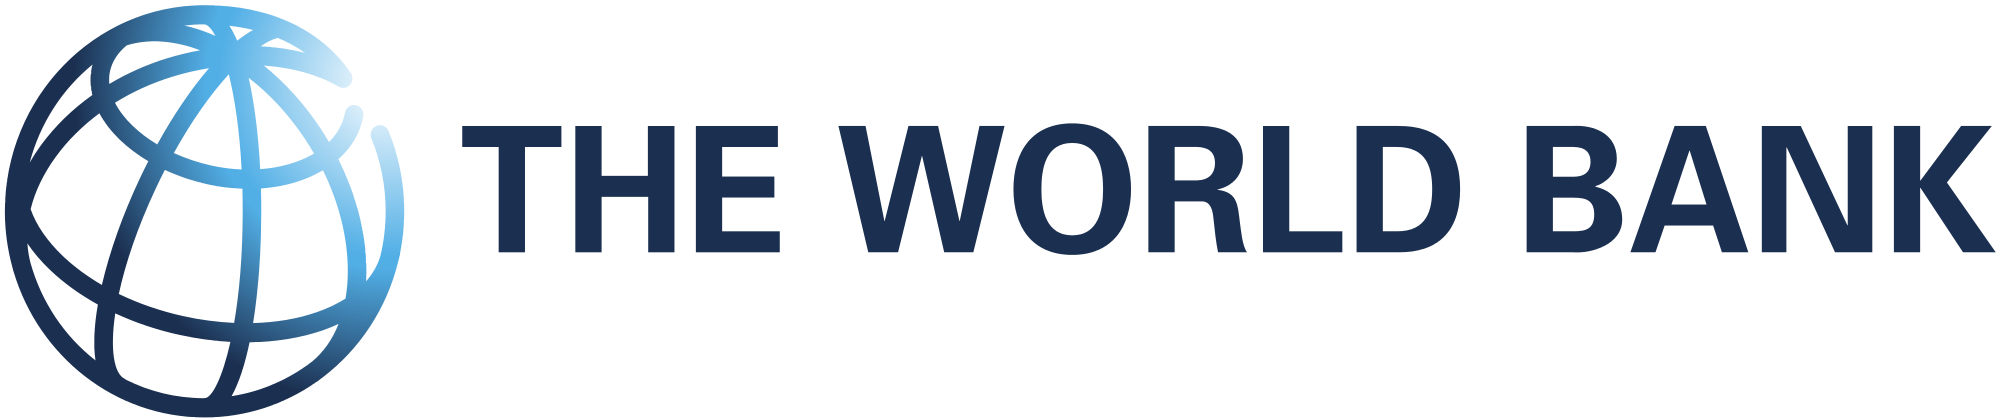 The_World_Bank_logo.svg.png